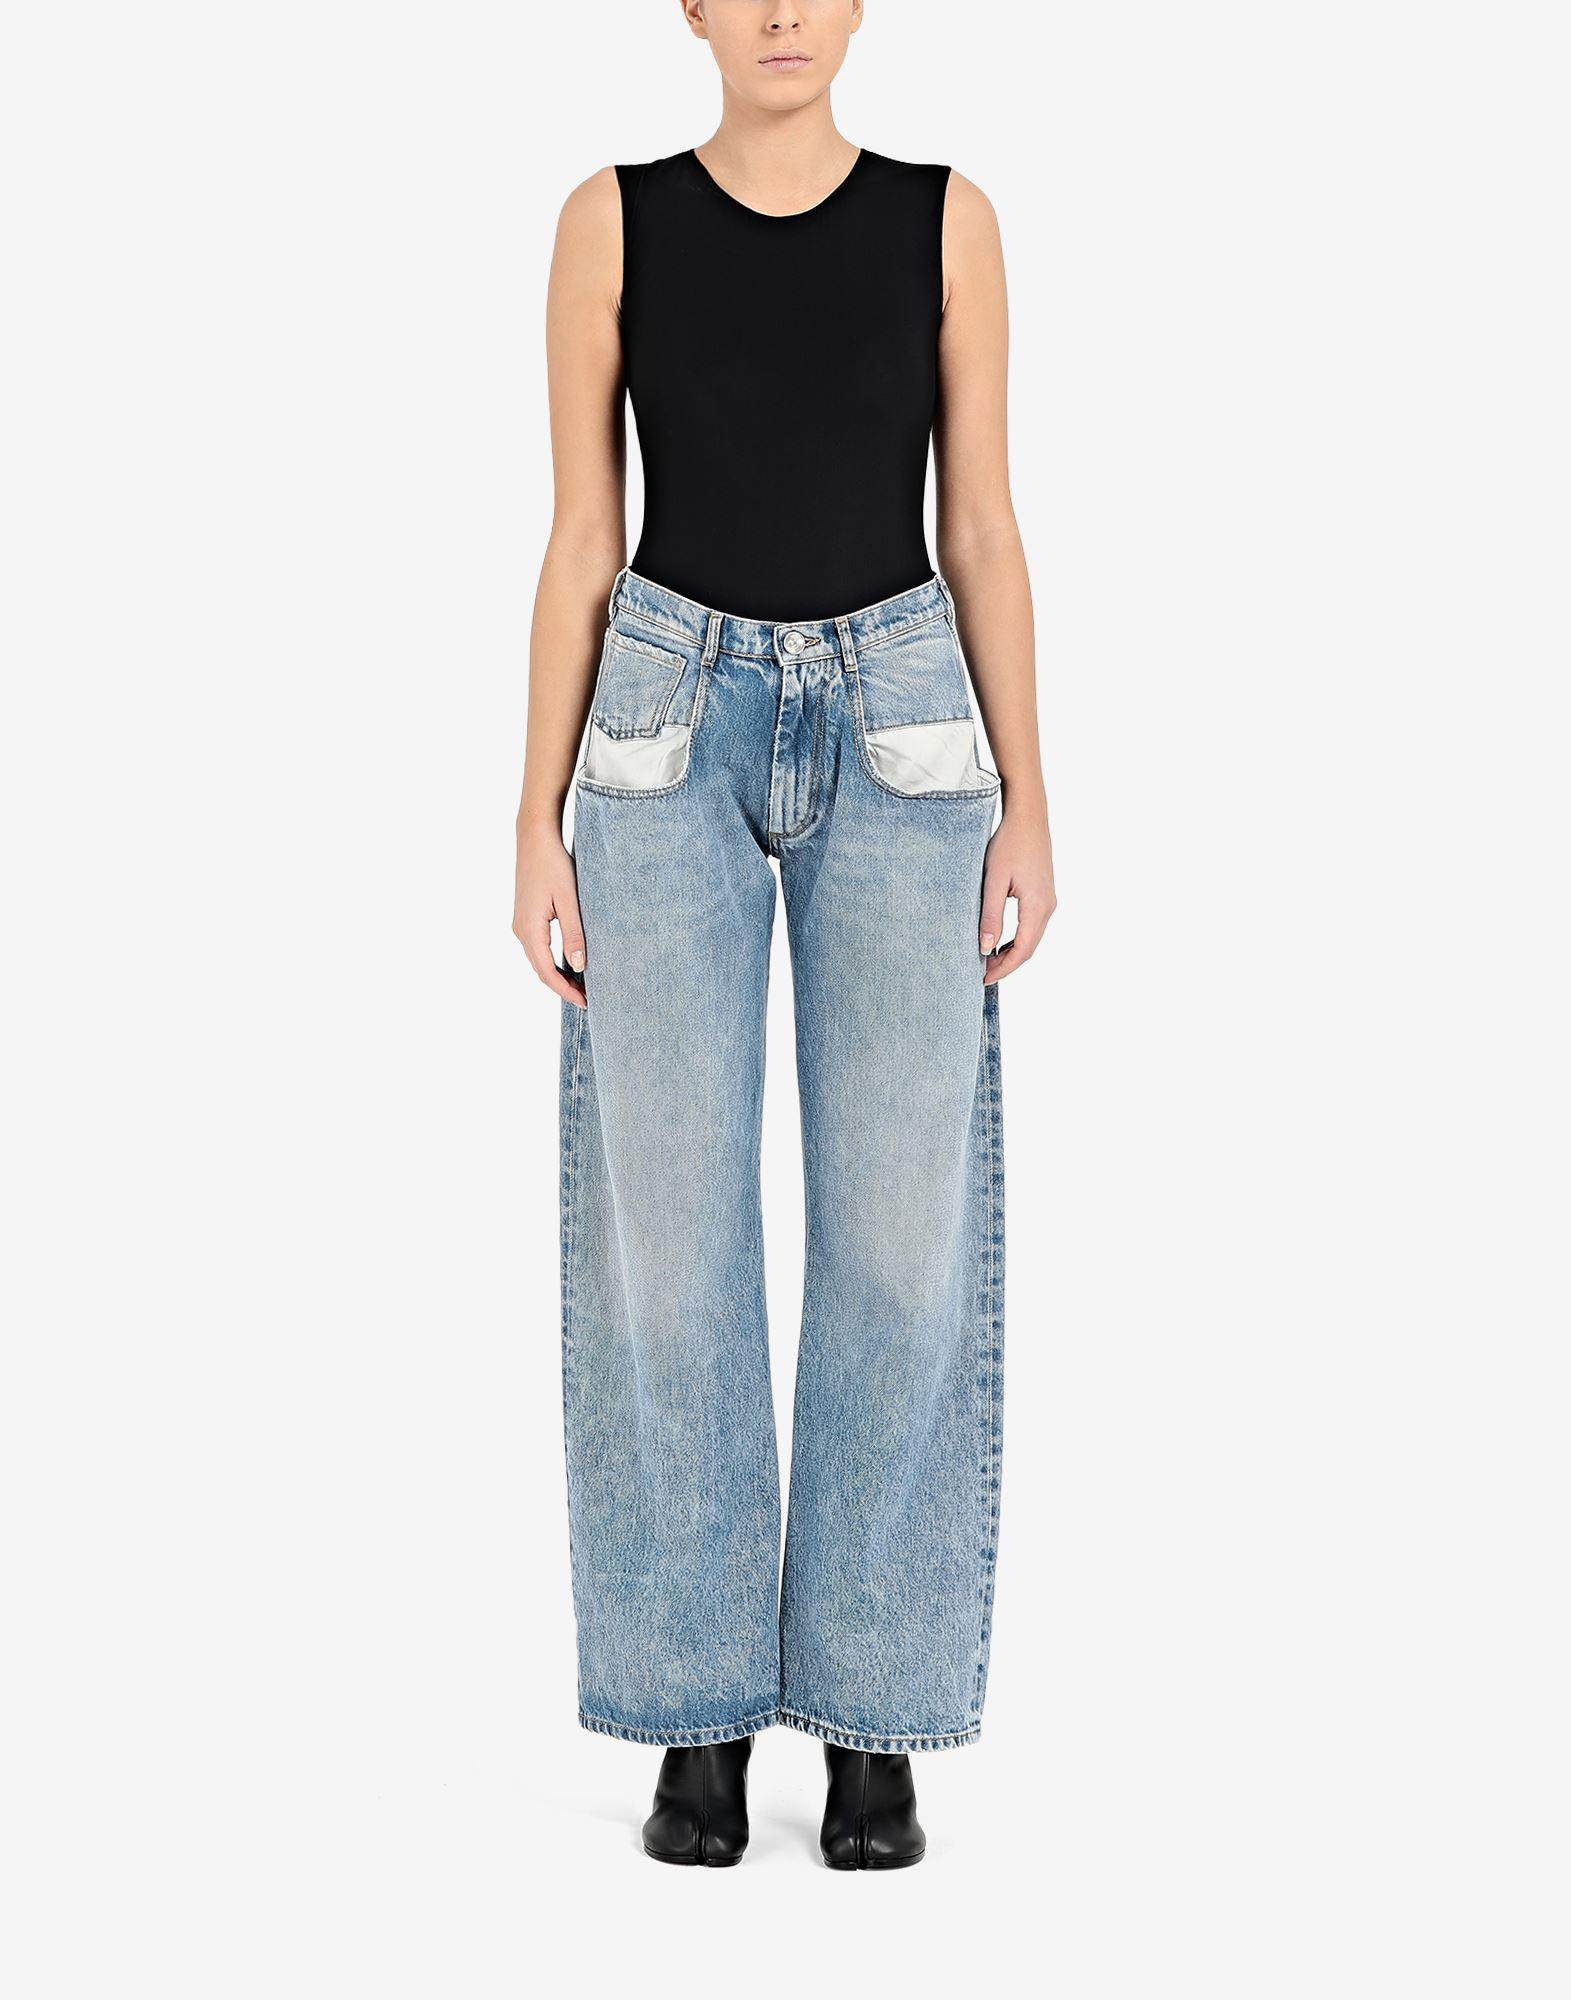 Straight jeans with contrasted pockets